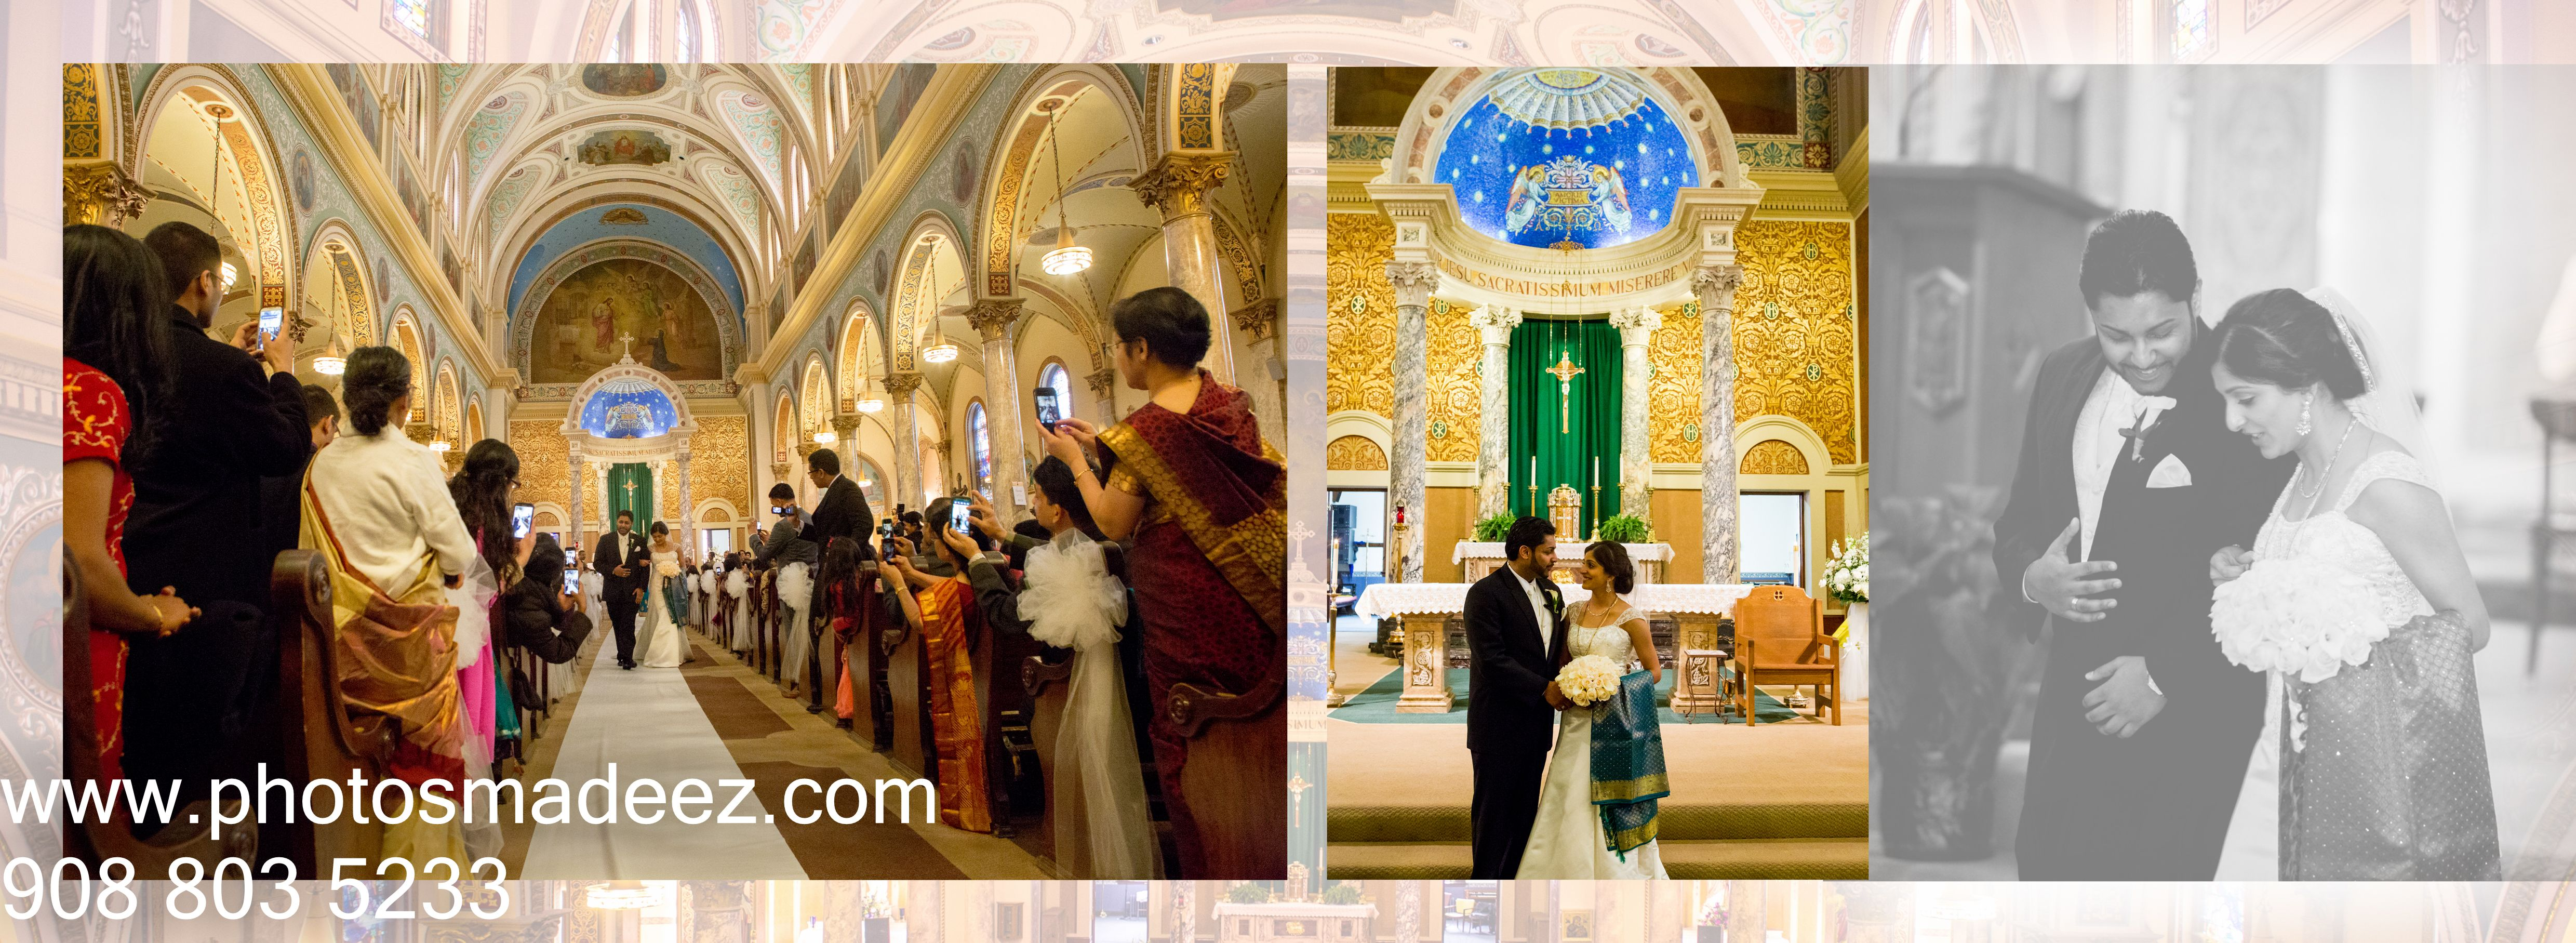 Wedding Album Photo Of Bride And Groom In Malayalee South Indian Christian Ceremony Monastery